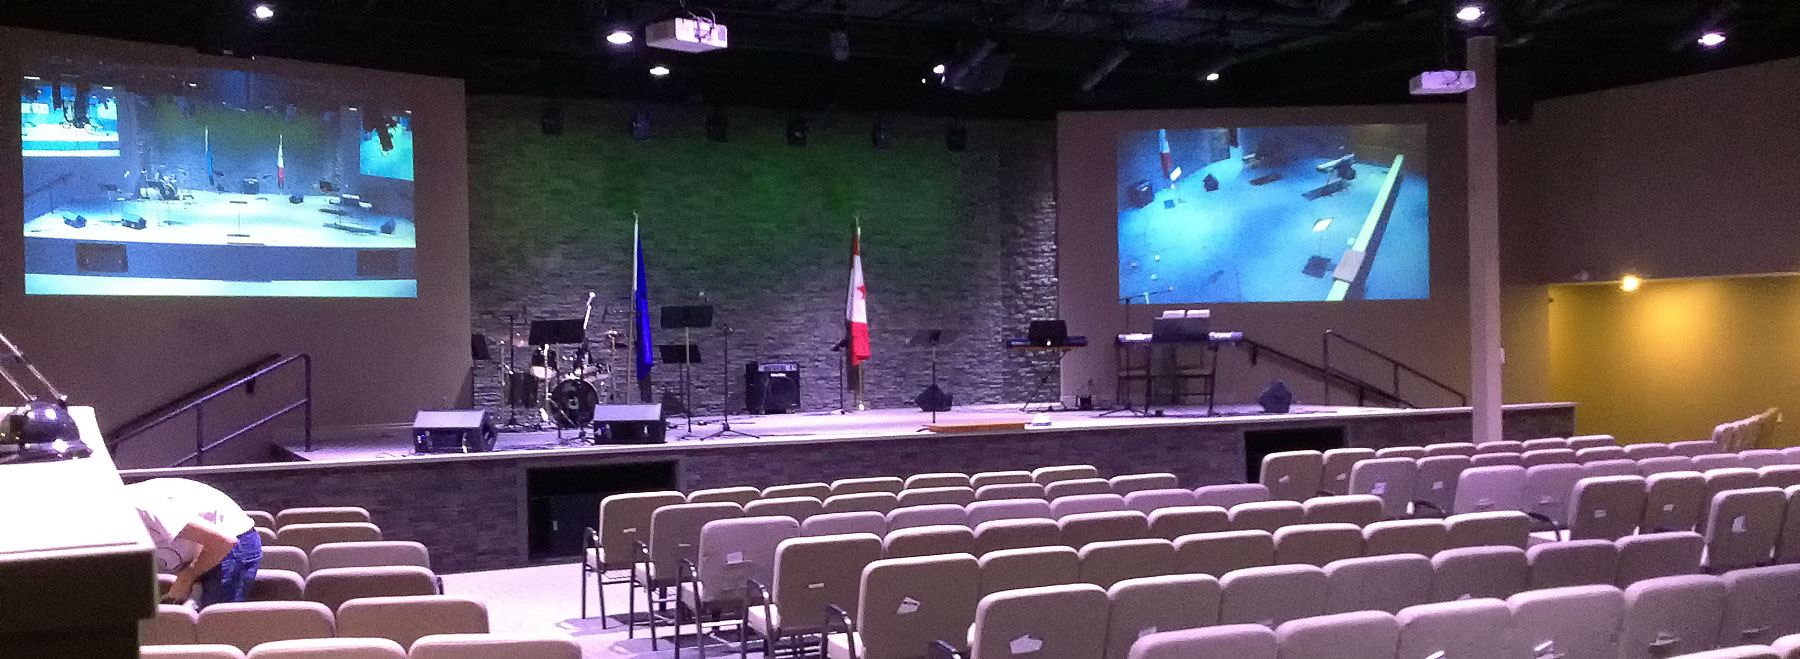 CityLights Church audio, video, stage and house lighting supplied and installed by Allstar.